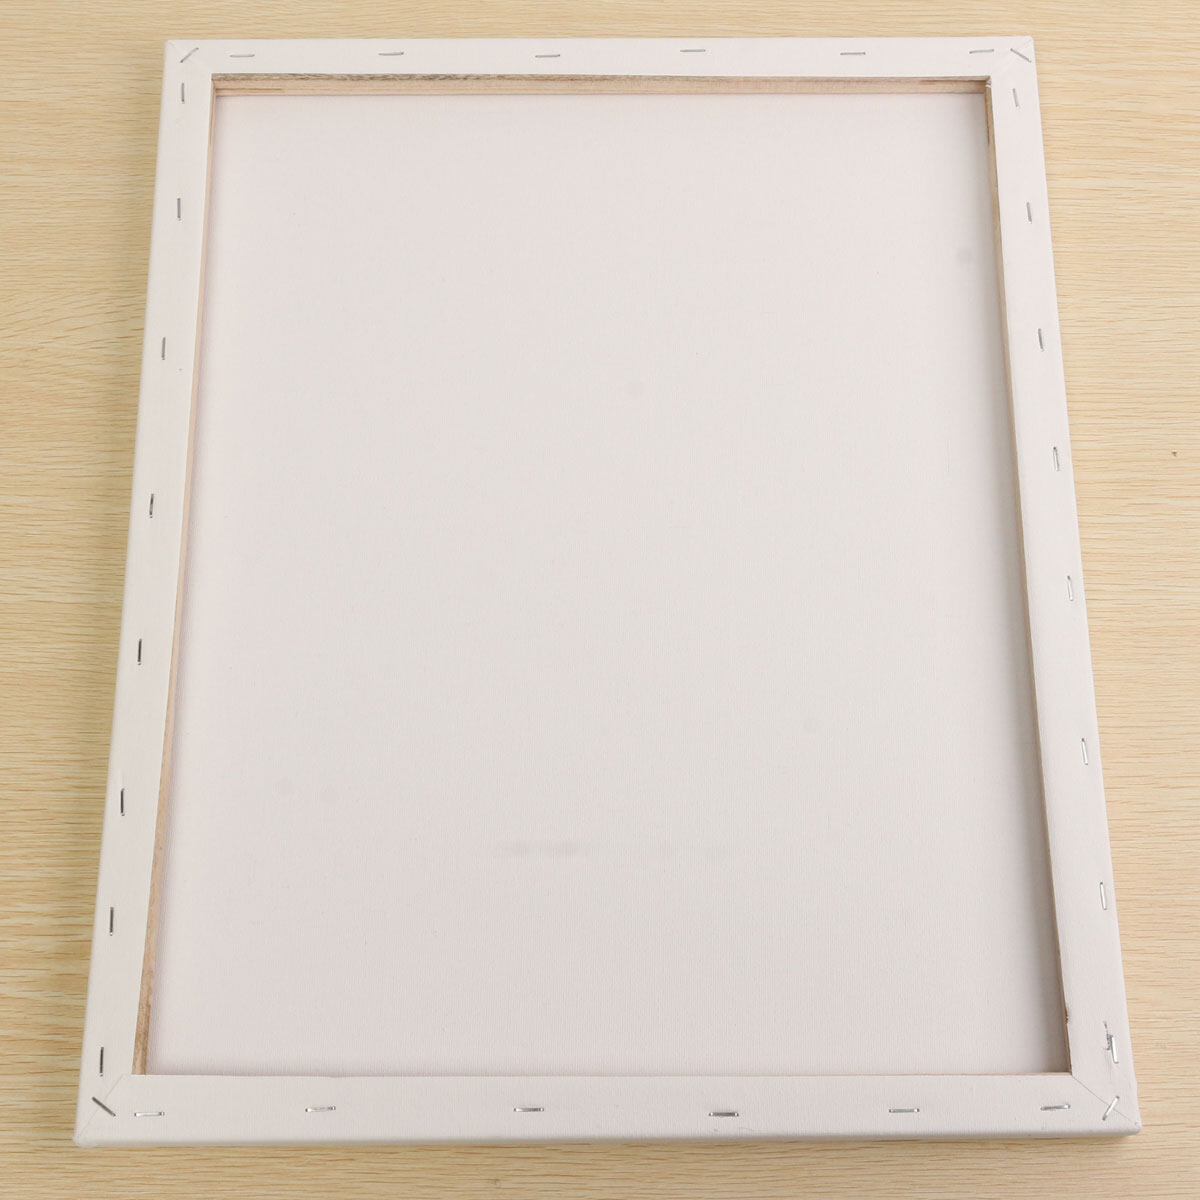 Mua White Blank Square Canvas Board Wooden Frame For Art Artist Oil Acrylic Paints 40x50cm - intl